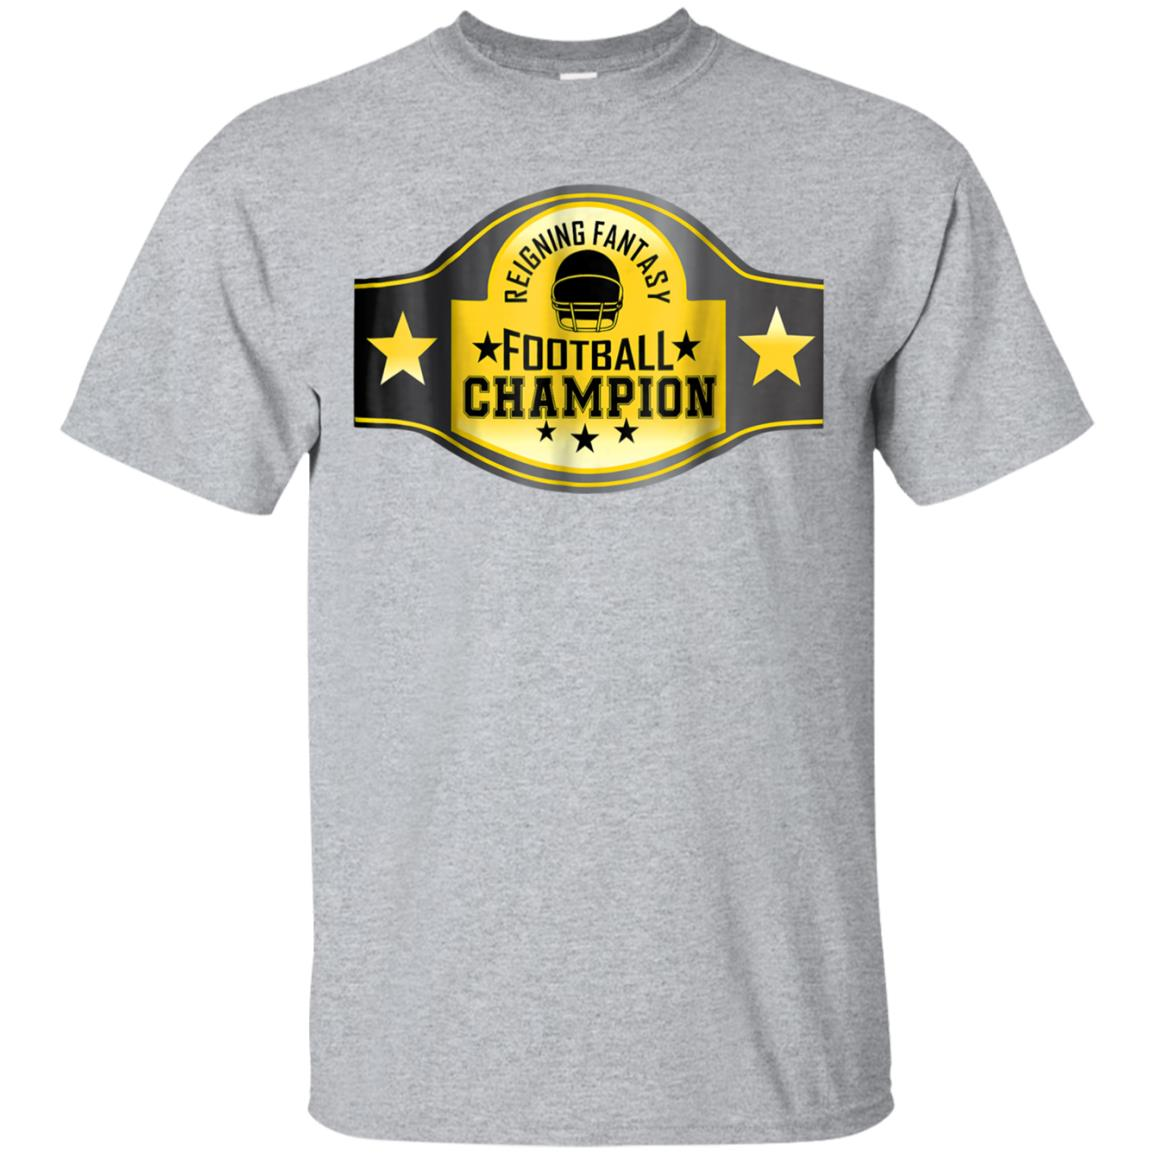 Reigning Fantasy Football Champion Shirt Funny League Belt 99promocode